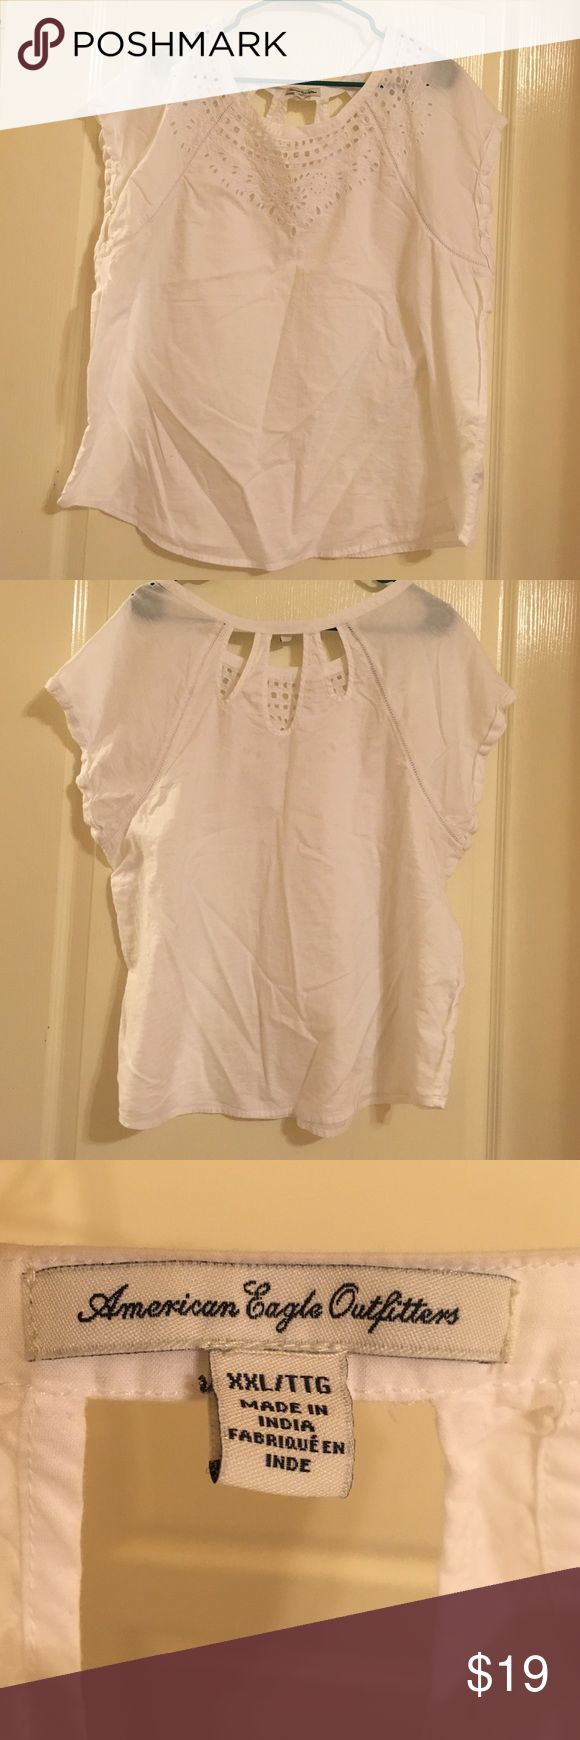 American Eagle shirt American Eagle white blouse worn once great condition American Eagle Outfitters Tops Blouses